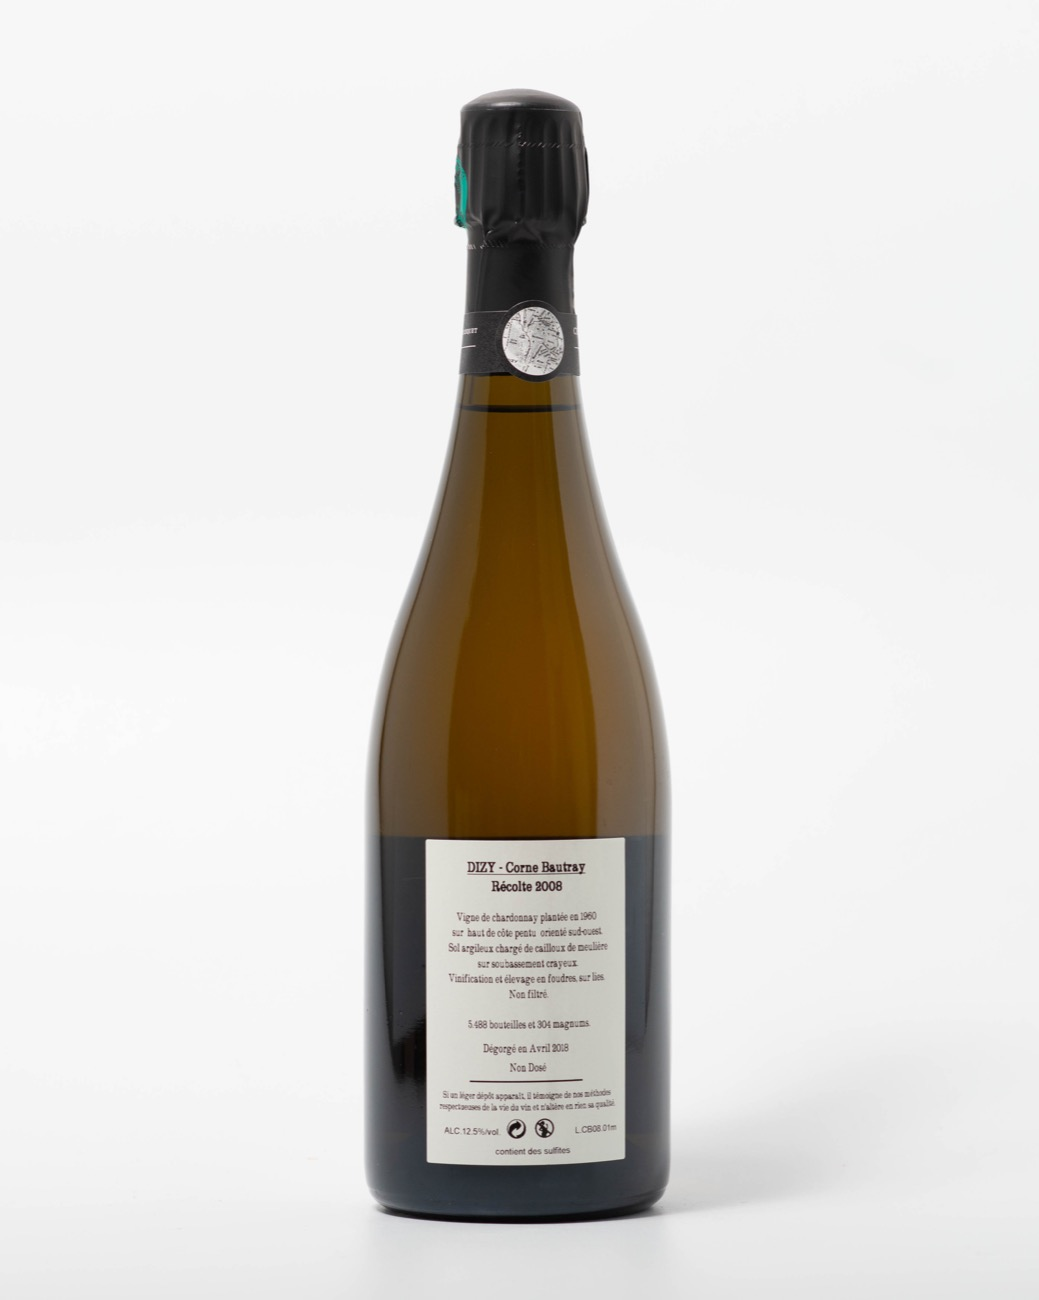 Jacquesson sizy corne bautray 2008 2